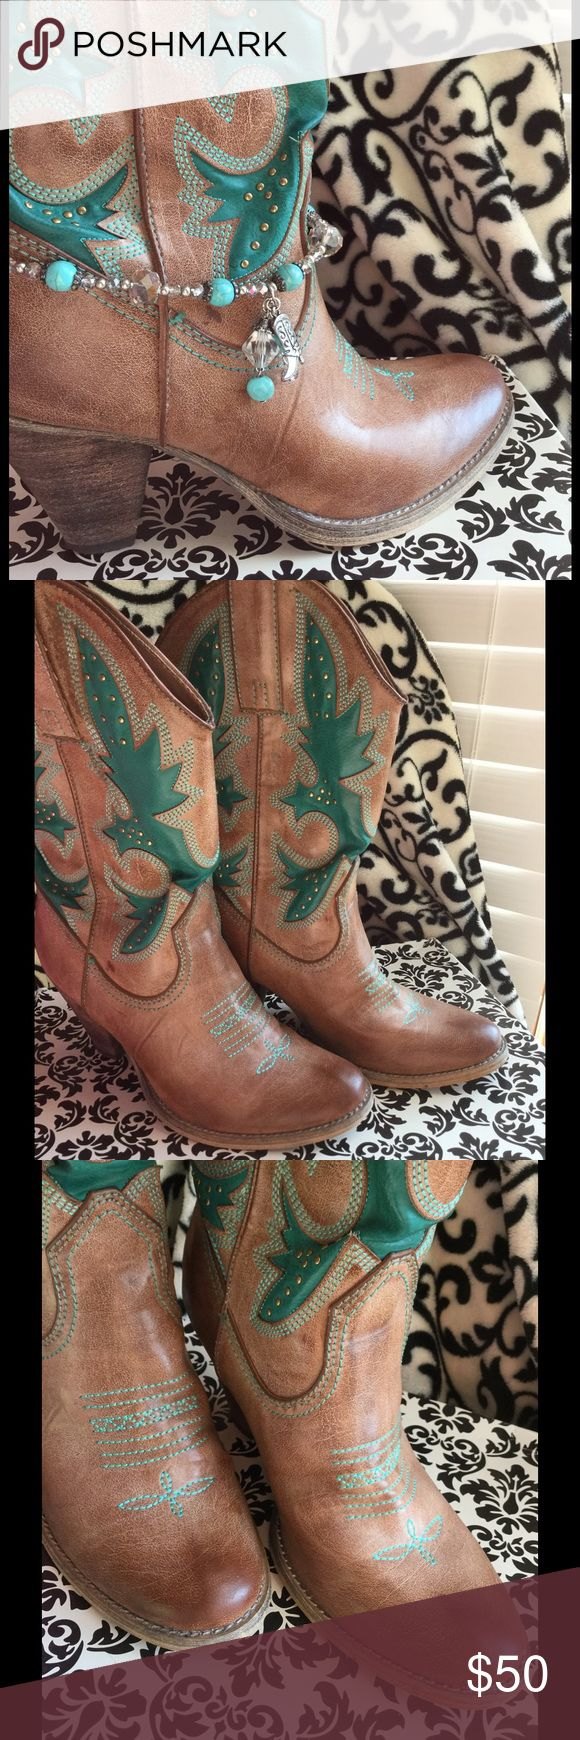 Rio Grande cowboy boots (gift with purchase) Size 8.5 from Very Voltaire.  Gently loved condition. Worn just a few times.  Includes turquoise boot charm gift. Please note flaw on right boot in third listing photo. Very Voltaire Shoes Heeled Boots